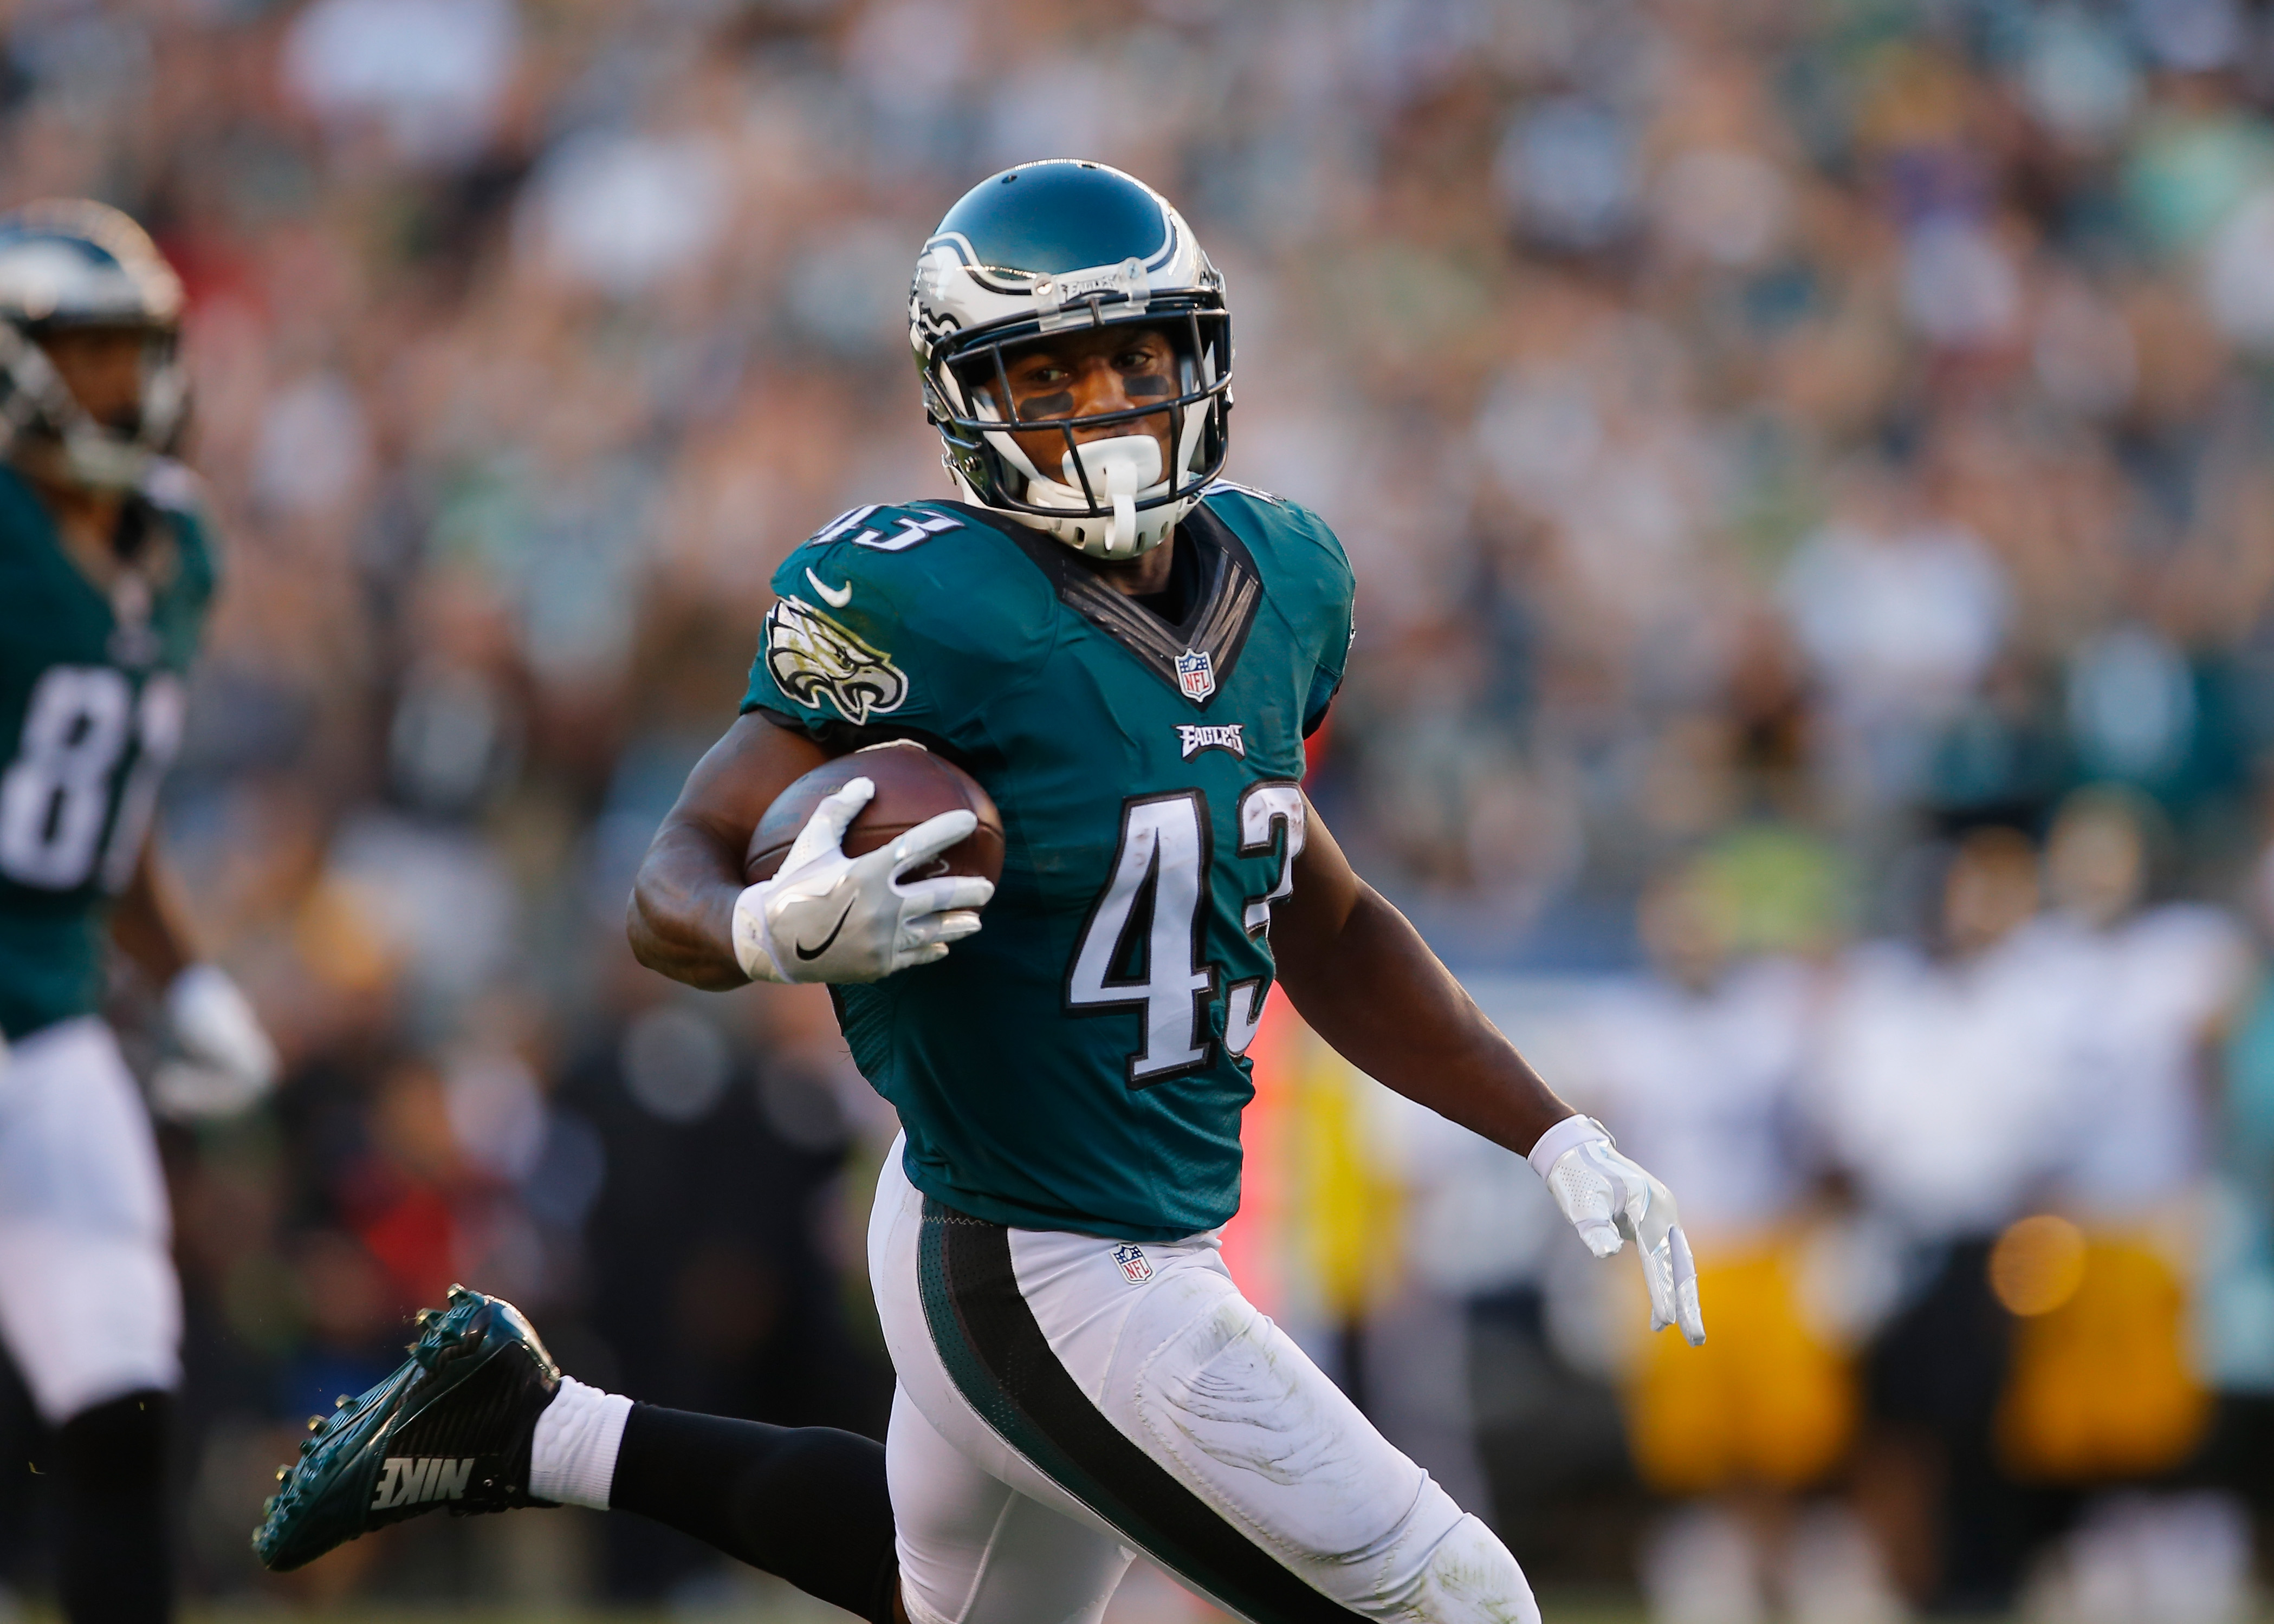 Eagles Weekly Recap: Week 17, Free agency talk, Sproles's future, and more